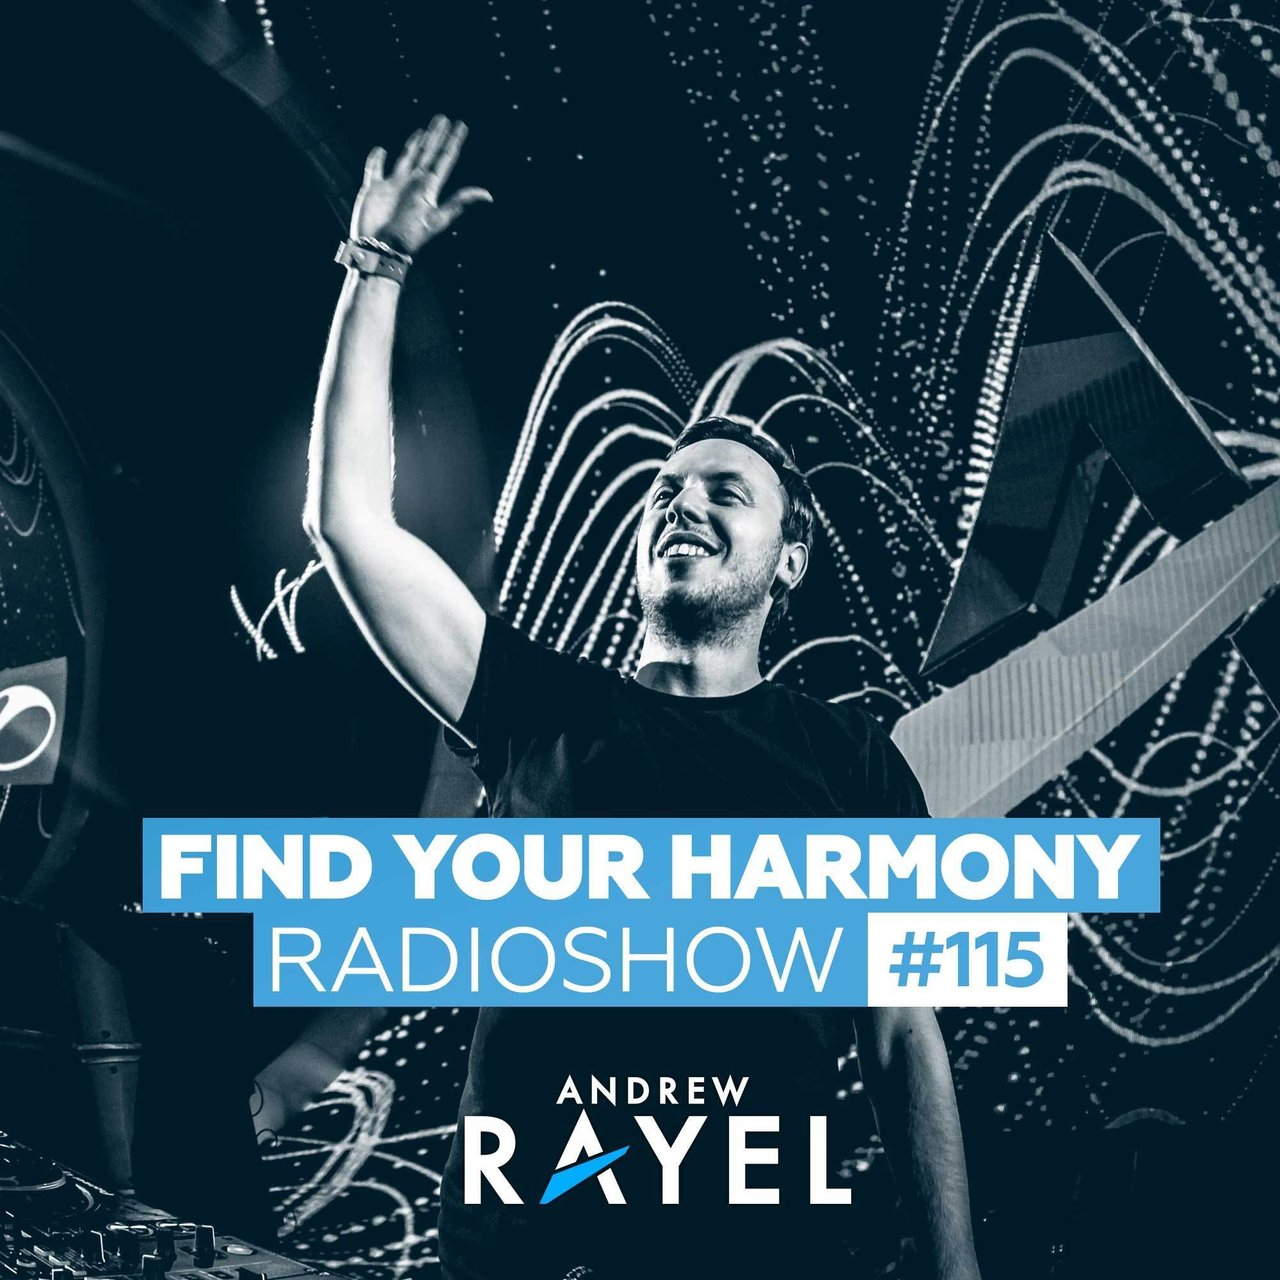 Find Your Harmony Radioshow #115